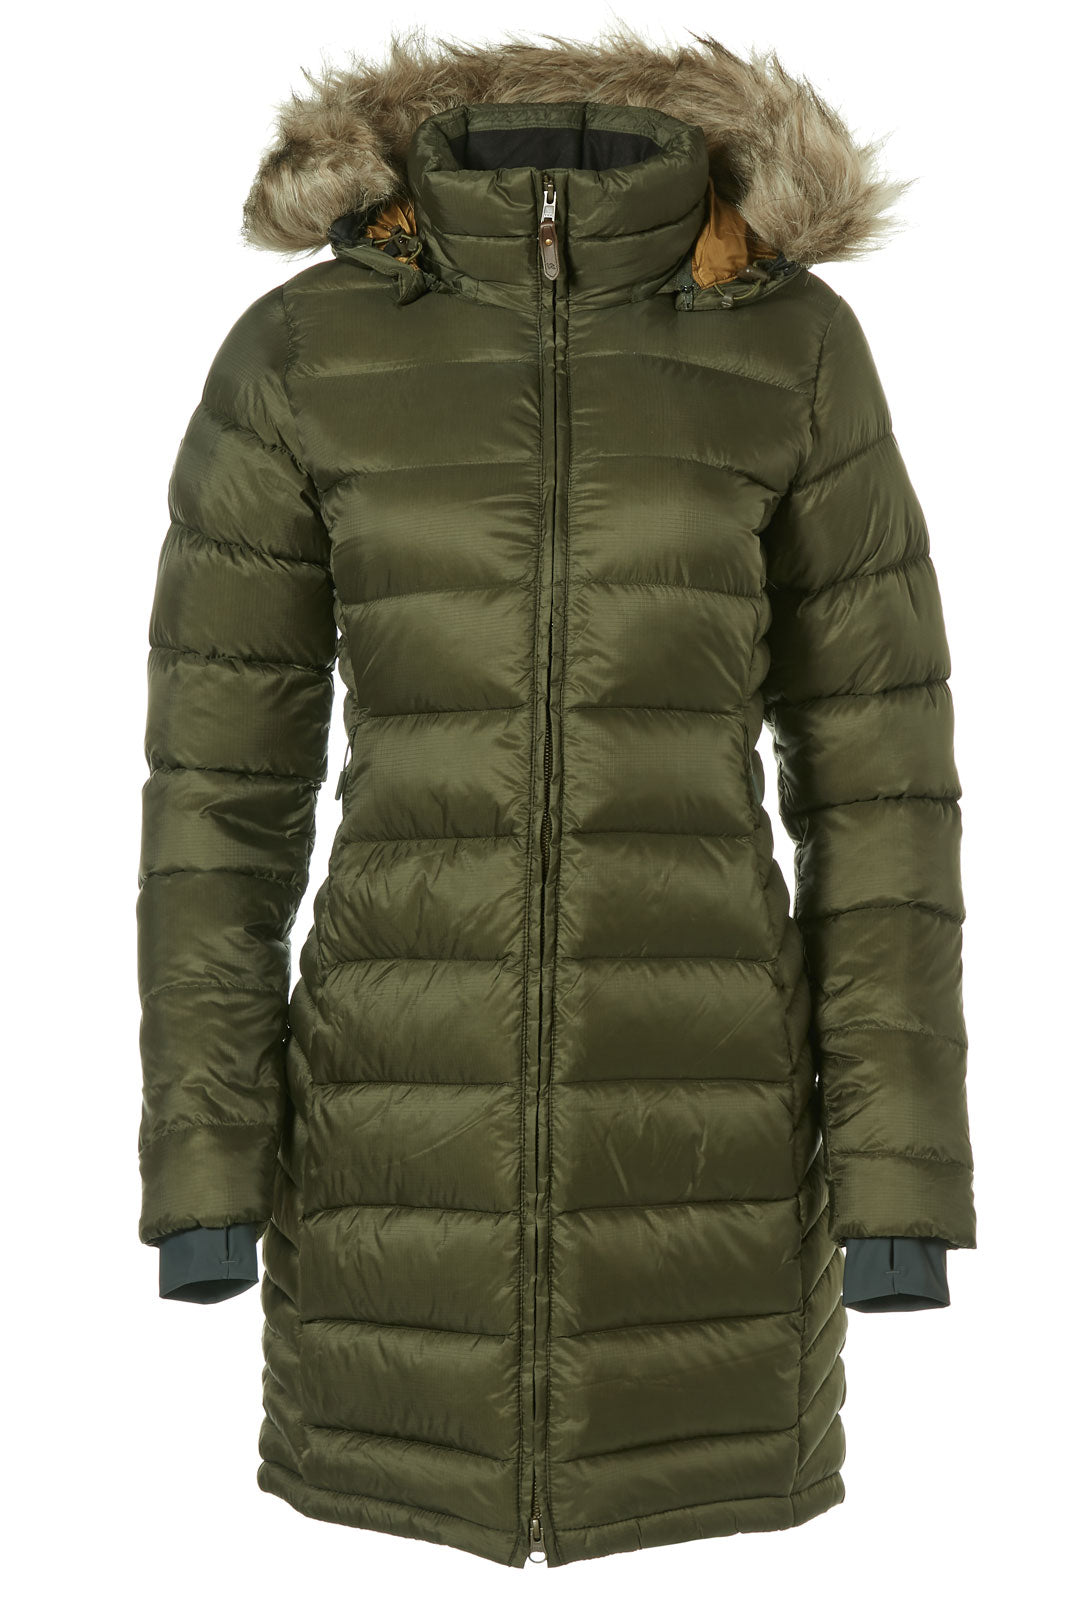 Rab Deep Cover Parka Jacket for Ladies in Army